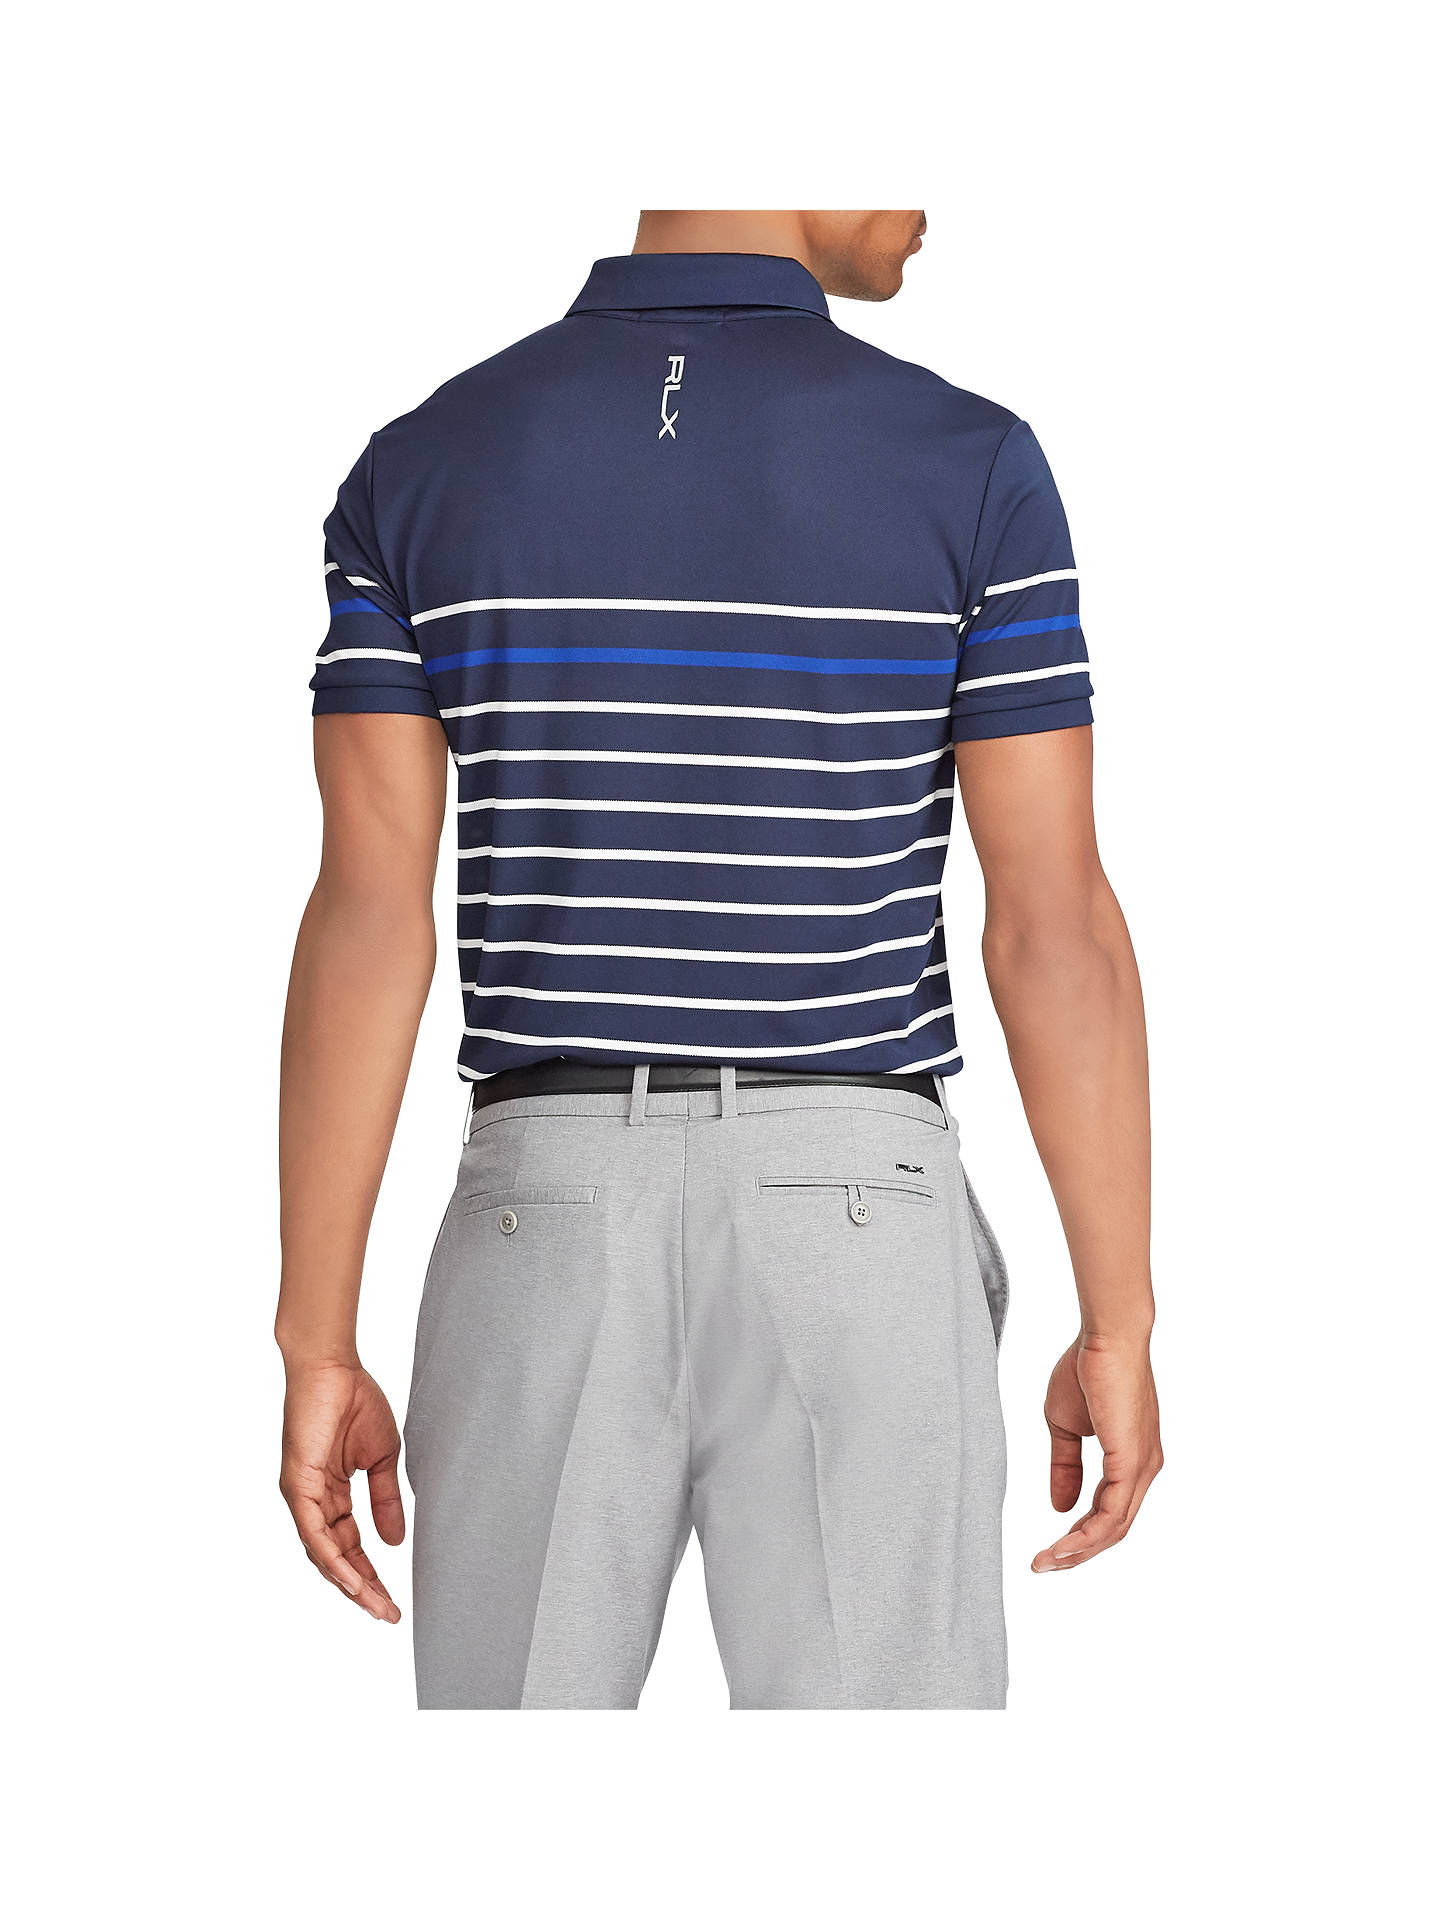 Buy Polo Golf by Ralph Lauren Tech Pique Polo Shirt, Navy/White/Royal, XL Online at johnlewis.com